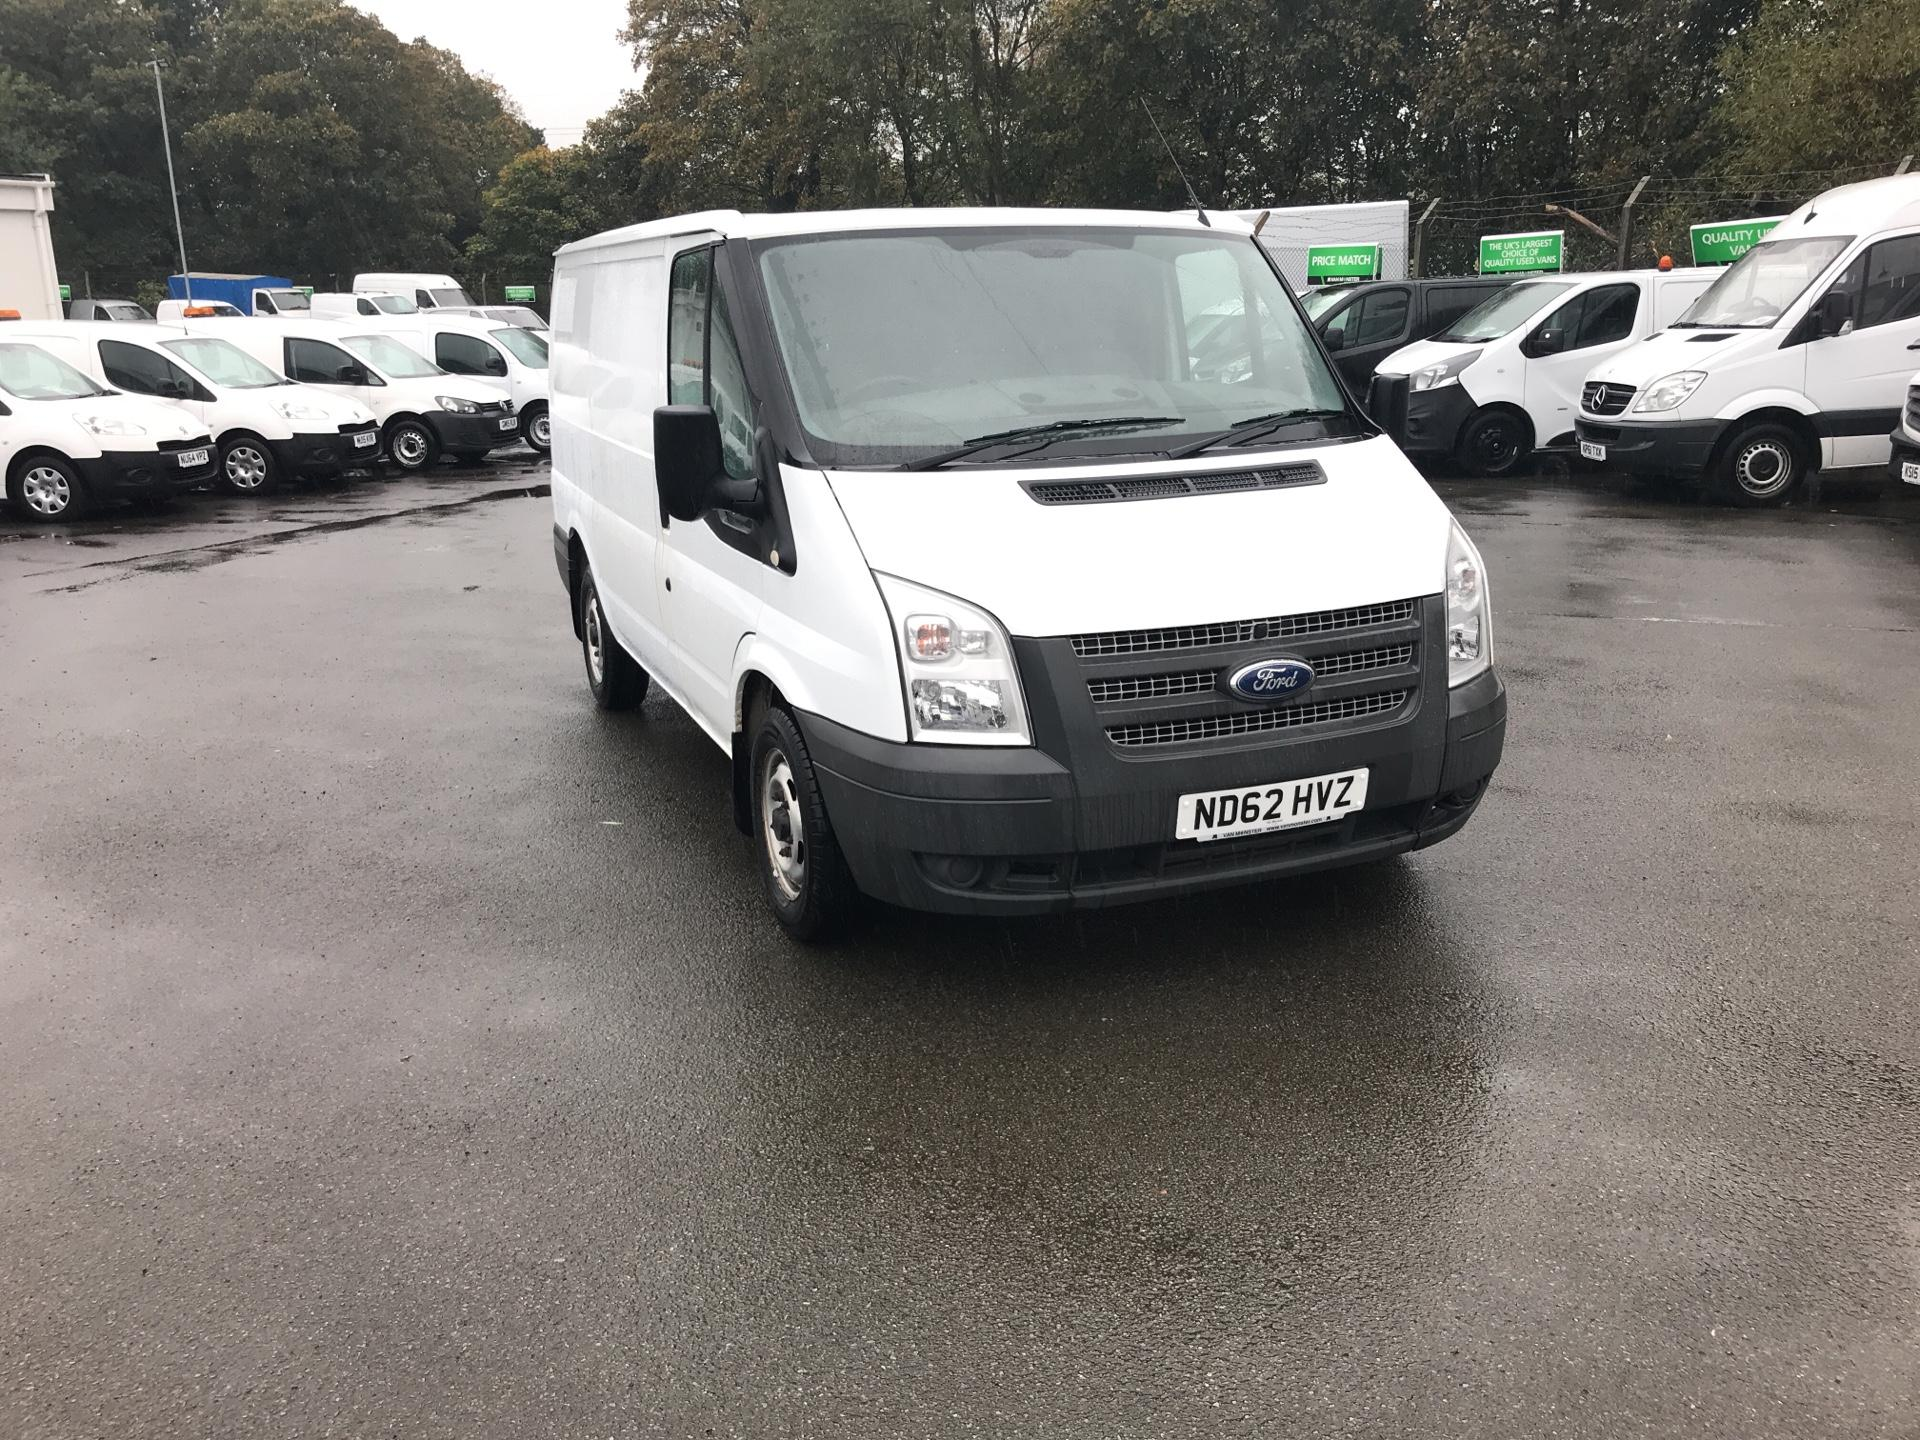 2014 Ford Transit T280 SWB DIESEL FWD LOW ROOF VAN TDCI 100PS EURO 5 *VALUE RANGE VEHICLE - CONDITION REFLECTED IN PRICE* (ND62HVZ)